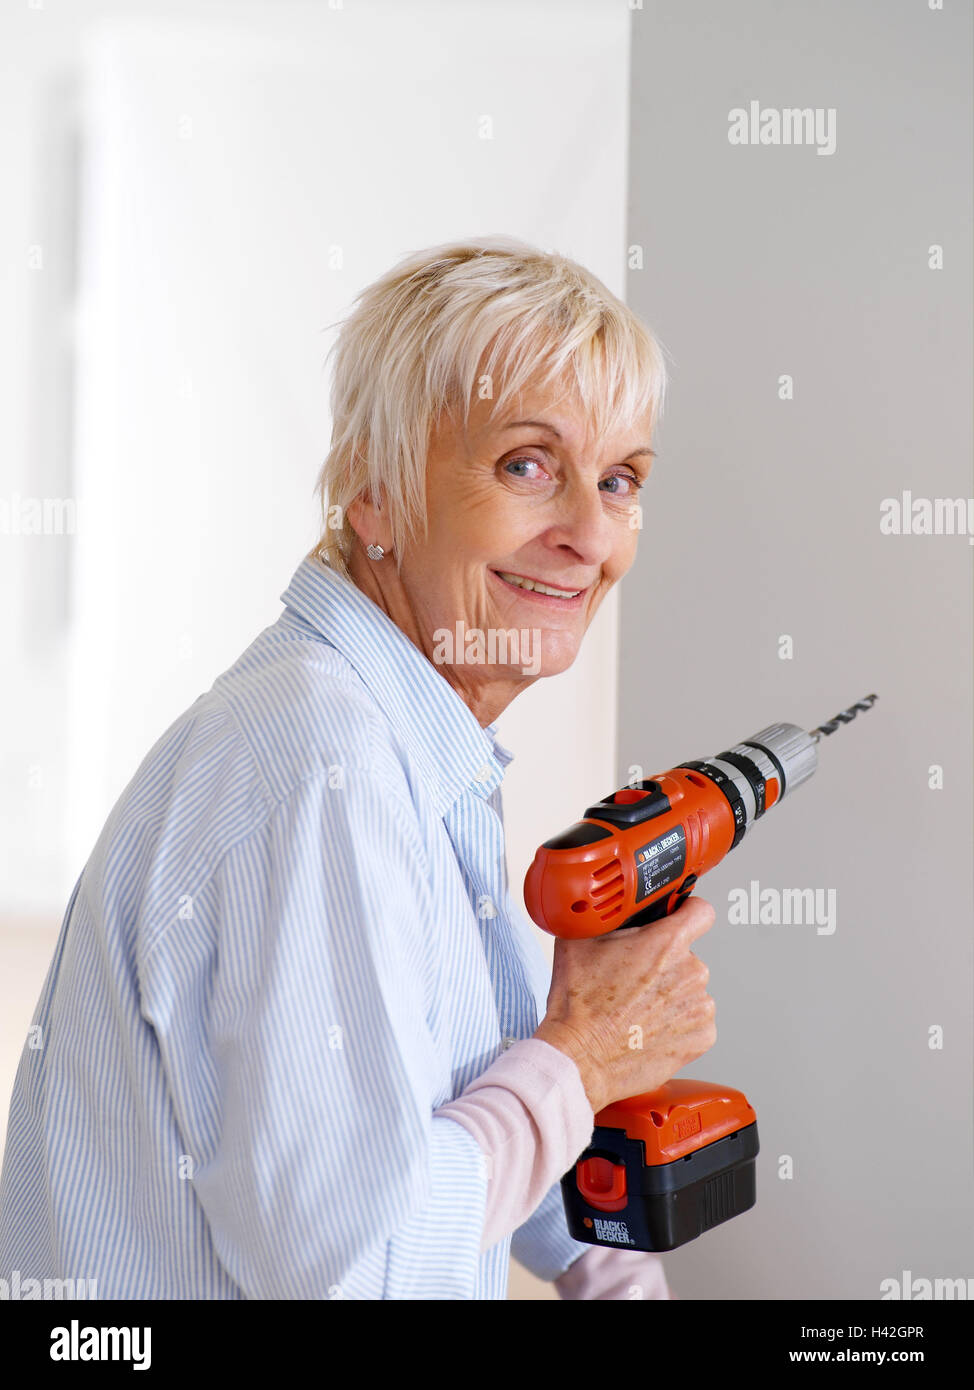 Flat renovation works senior drill smile renovate half flat renovation works senior drill smile renovate half portrait 60 70 years woman pensioner do it yourselfer actively fit agile old person solutioingenieria Gallery